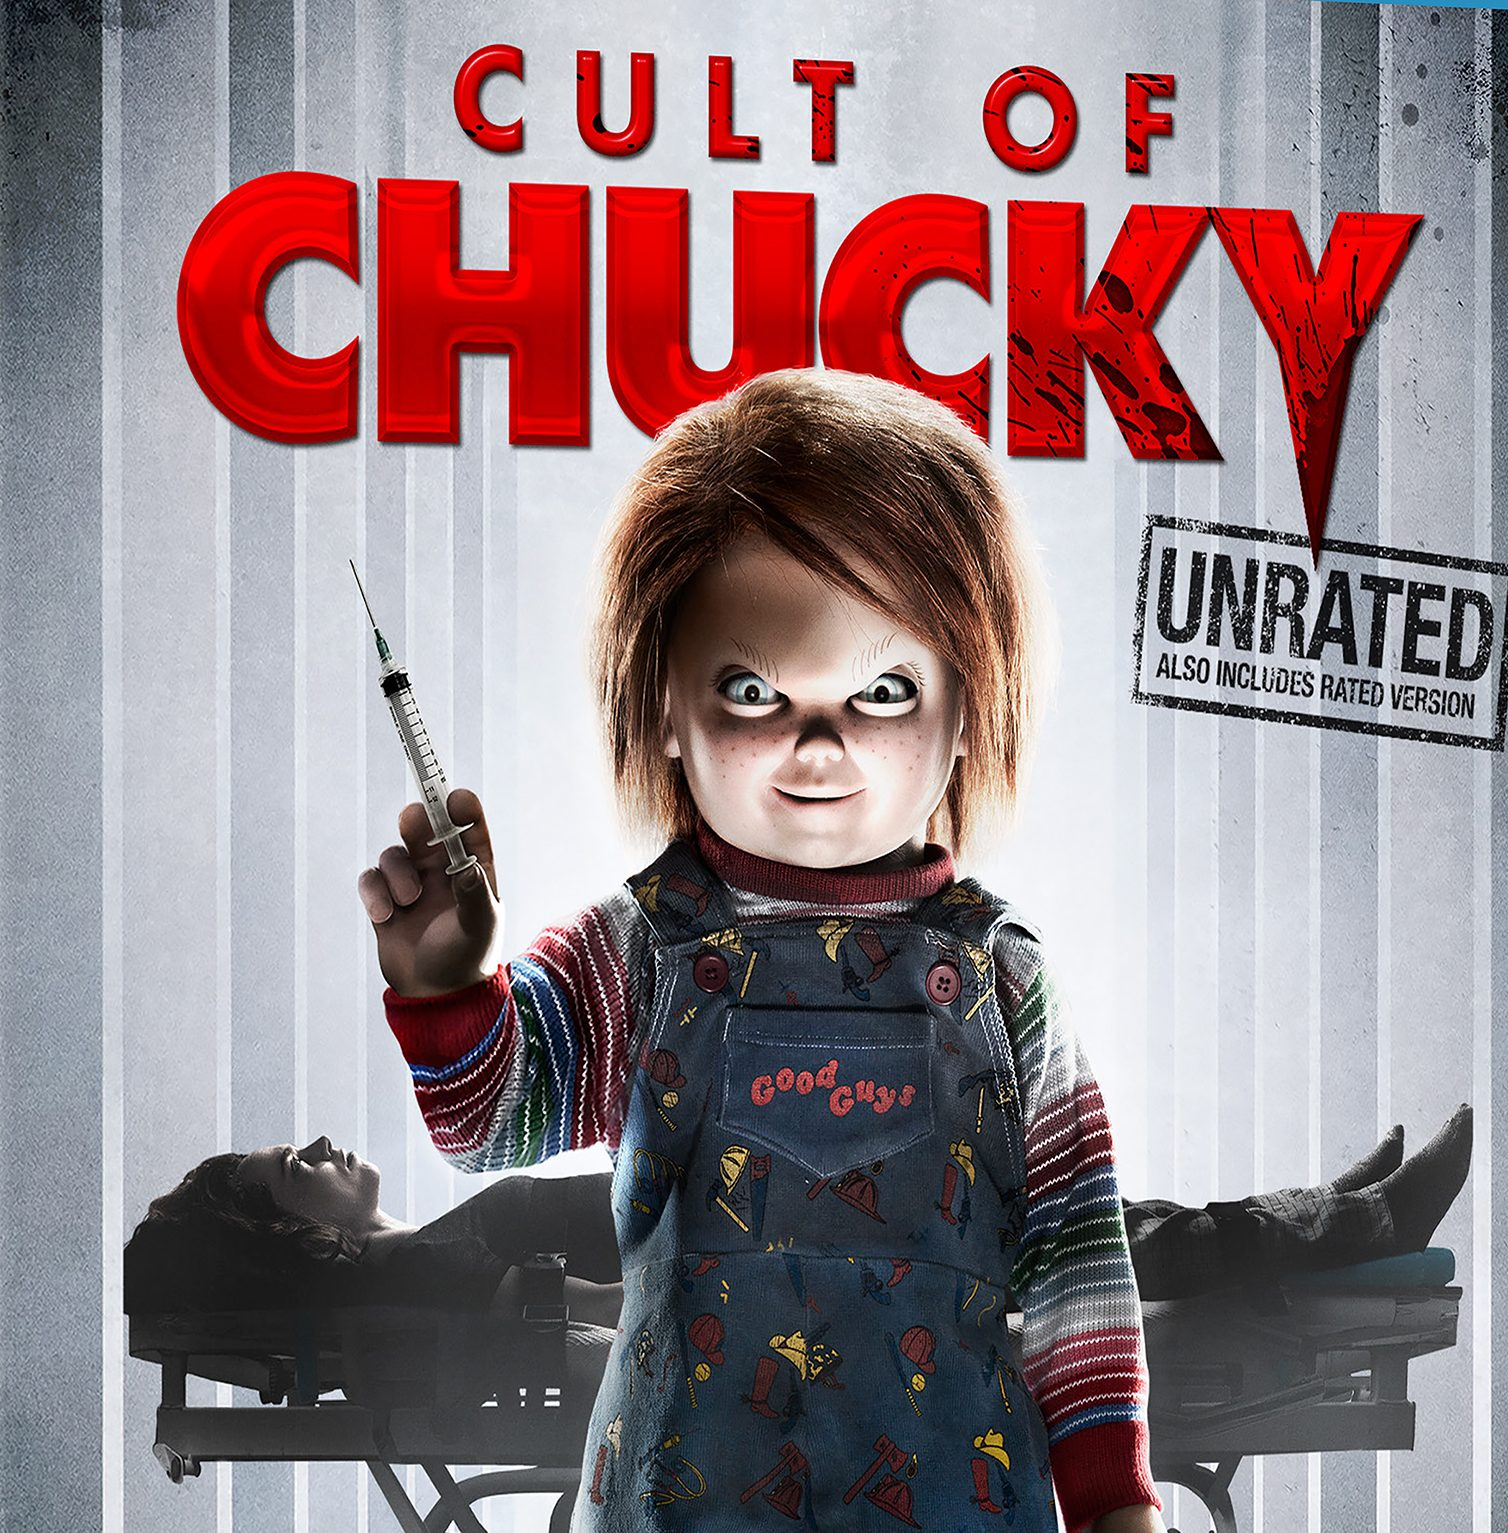 Cult of Chucky' Official Trailer Is Here To Play | Halloween Daily ...